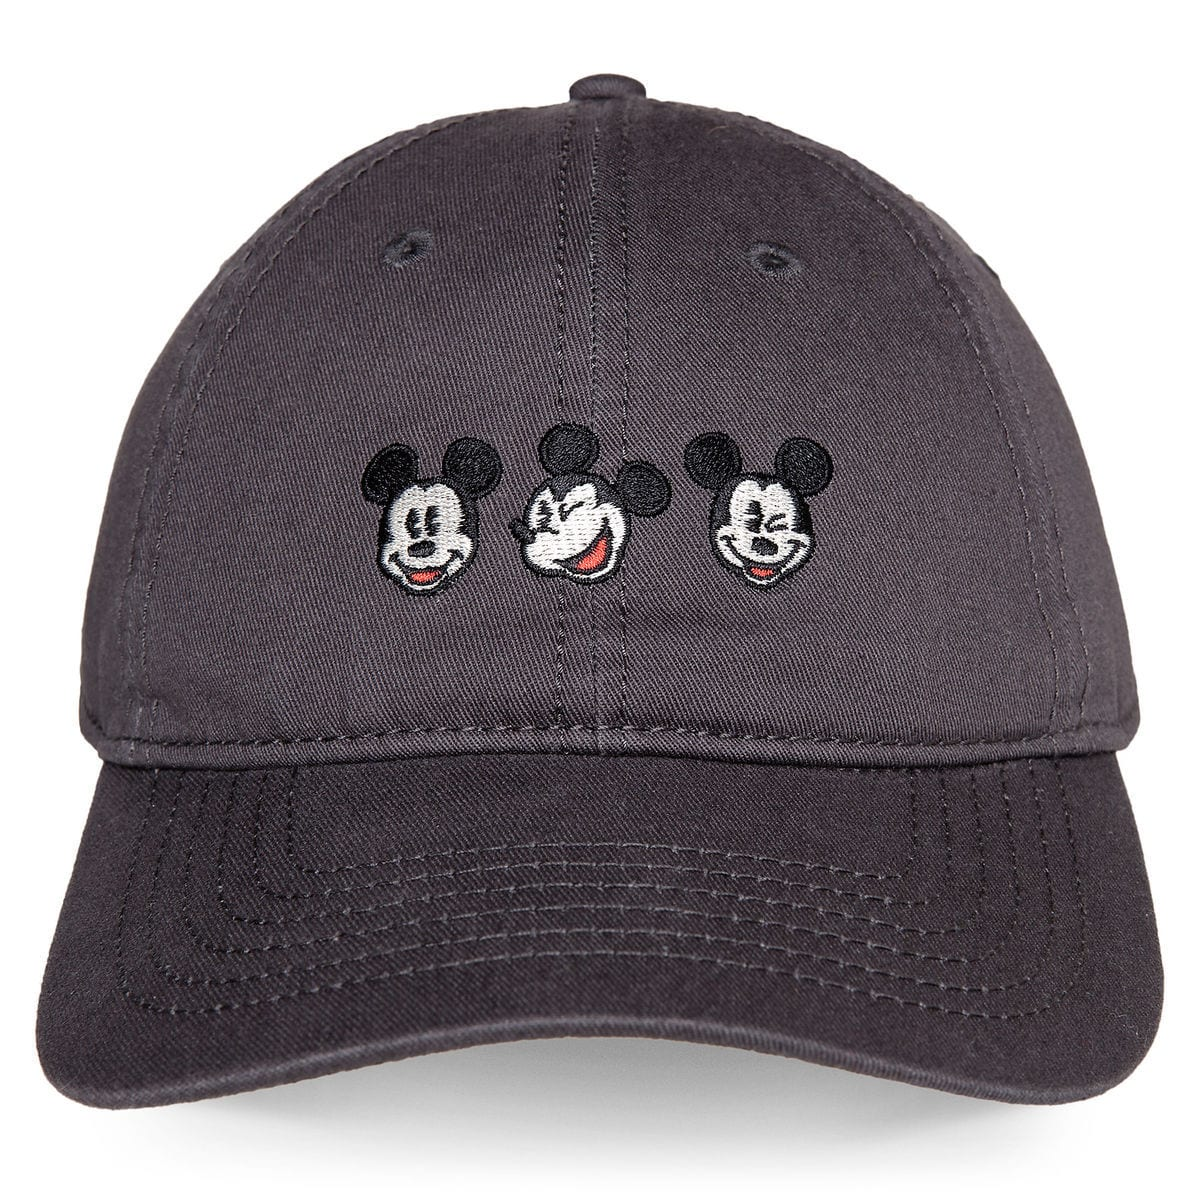 0d904b91eb7 Product Image of Mickey Mouse Embroidered Baseball Cap for Adults   1